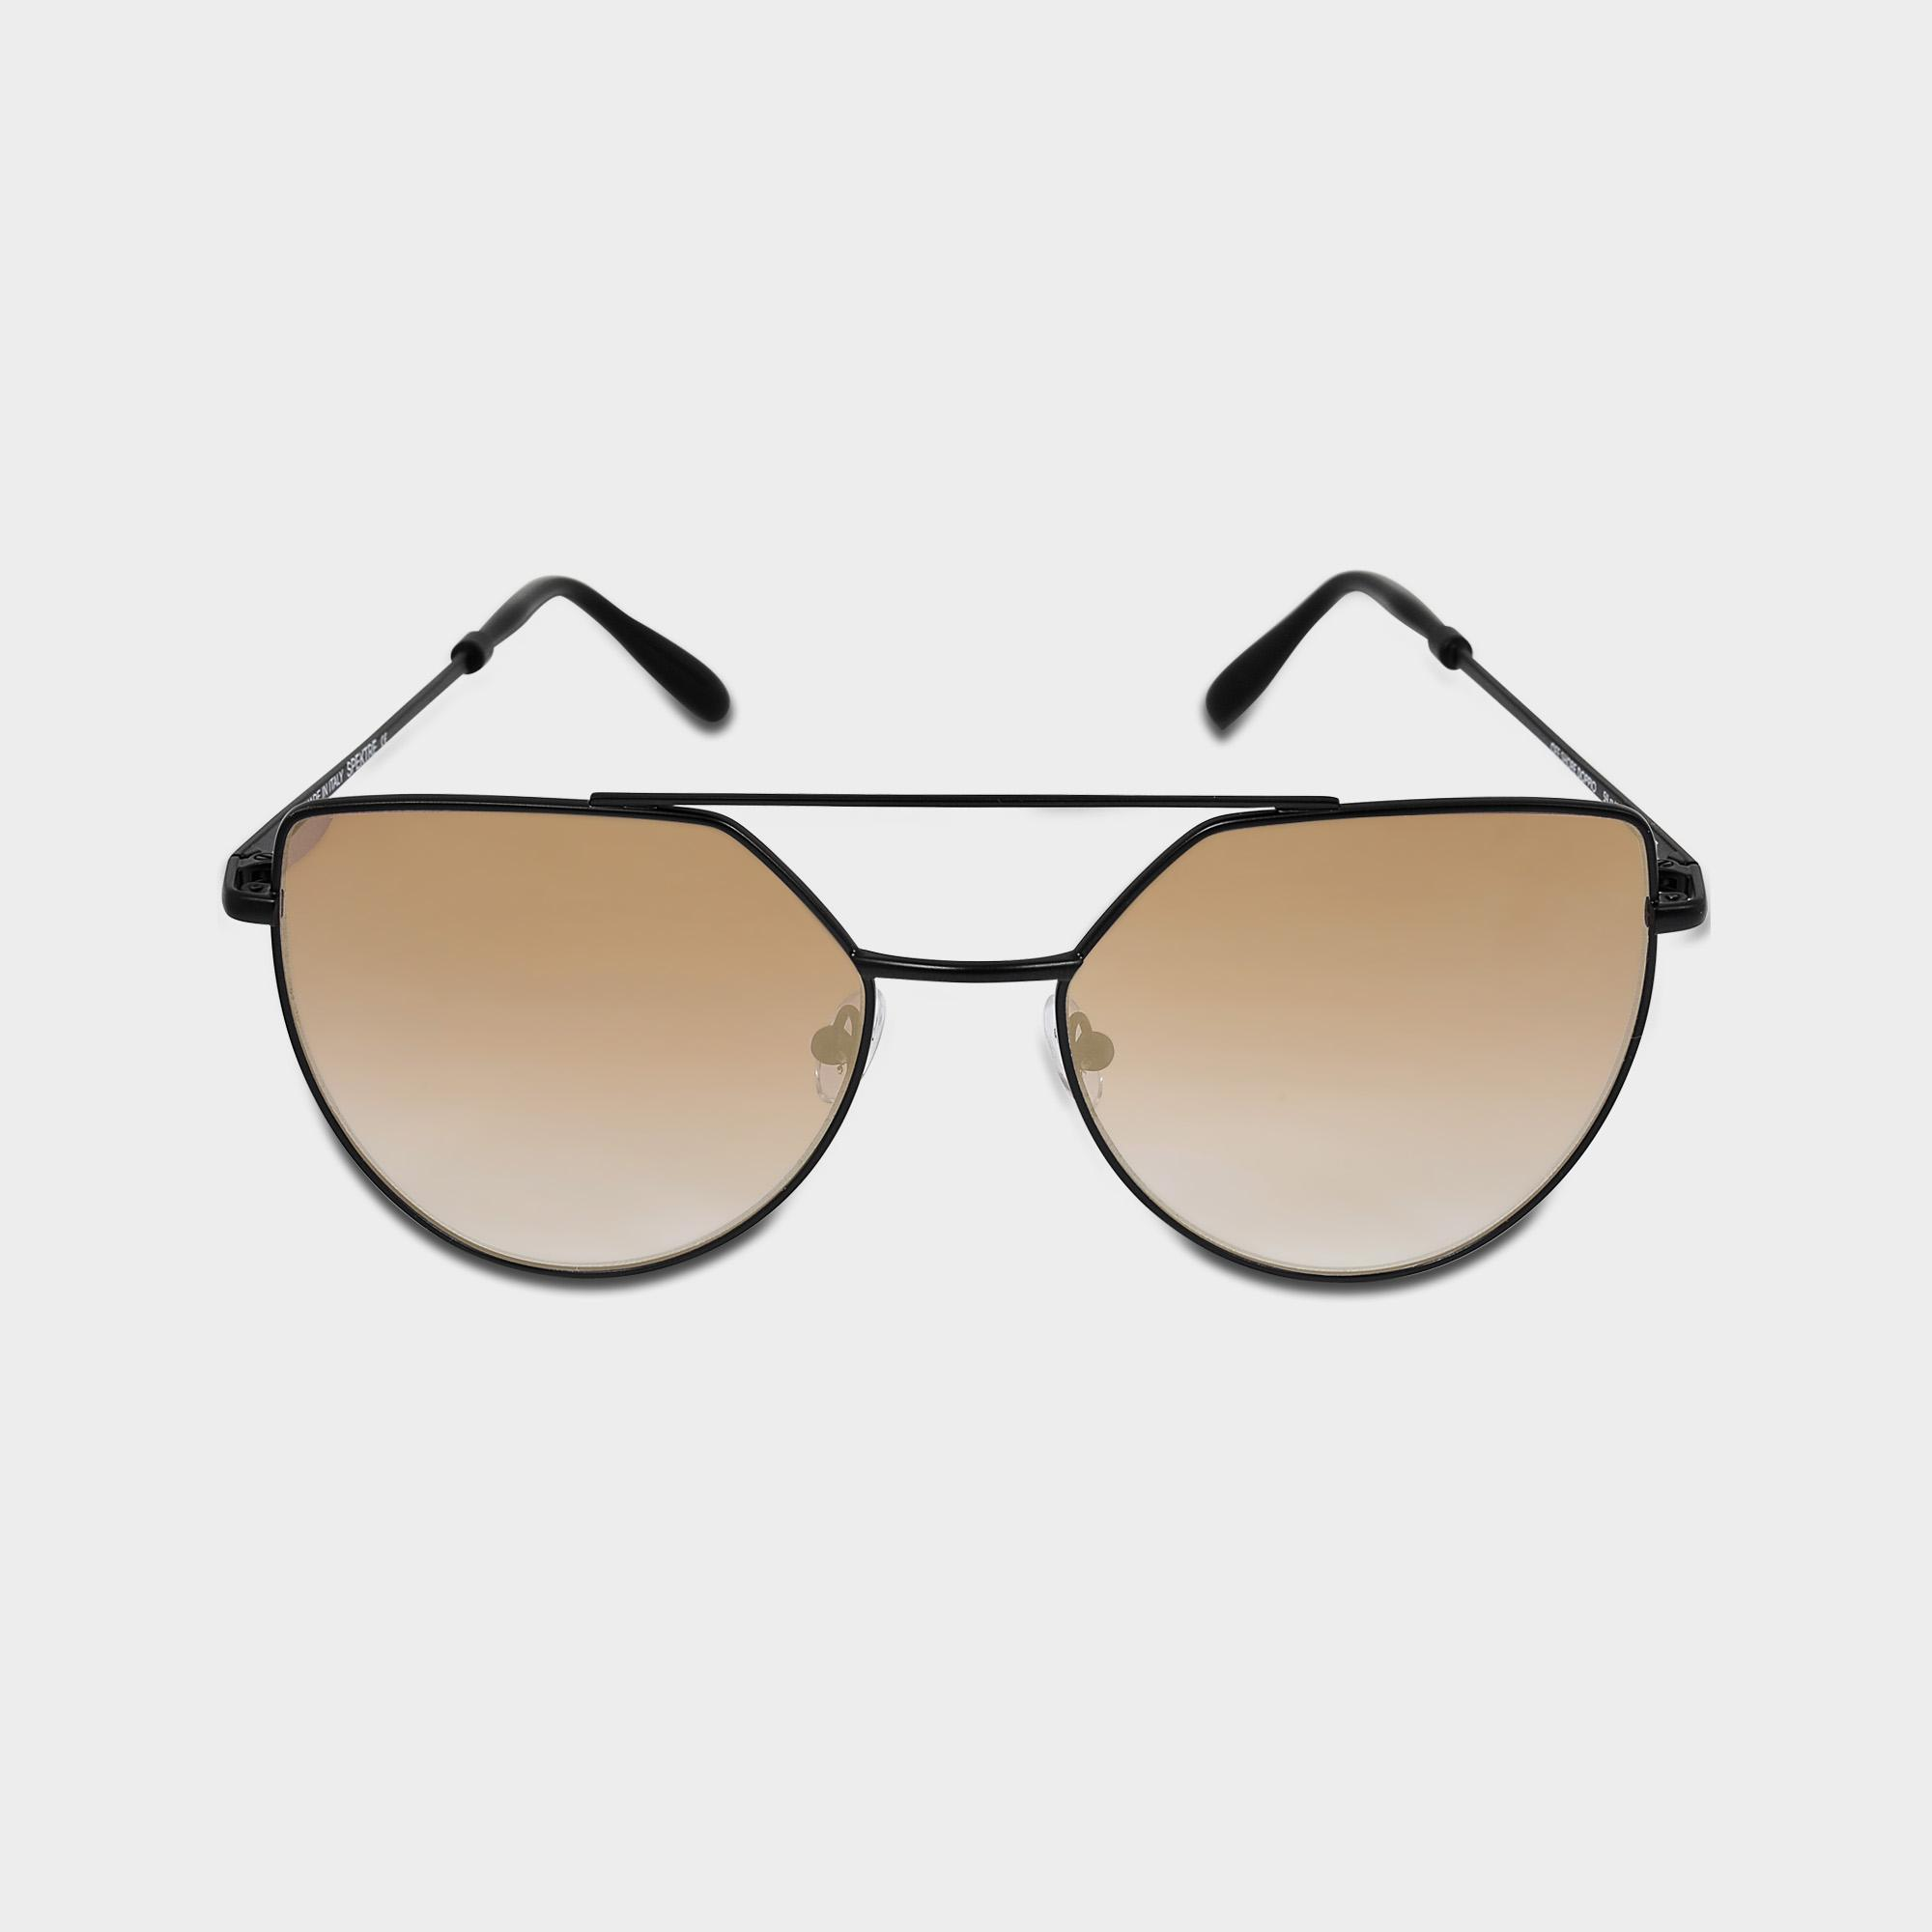 a5af4a66fae Lyst - Spektre Offshore Sunglasses In Matte Black And Gradient Gold ...